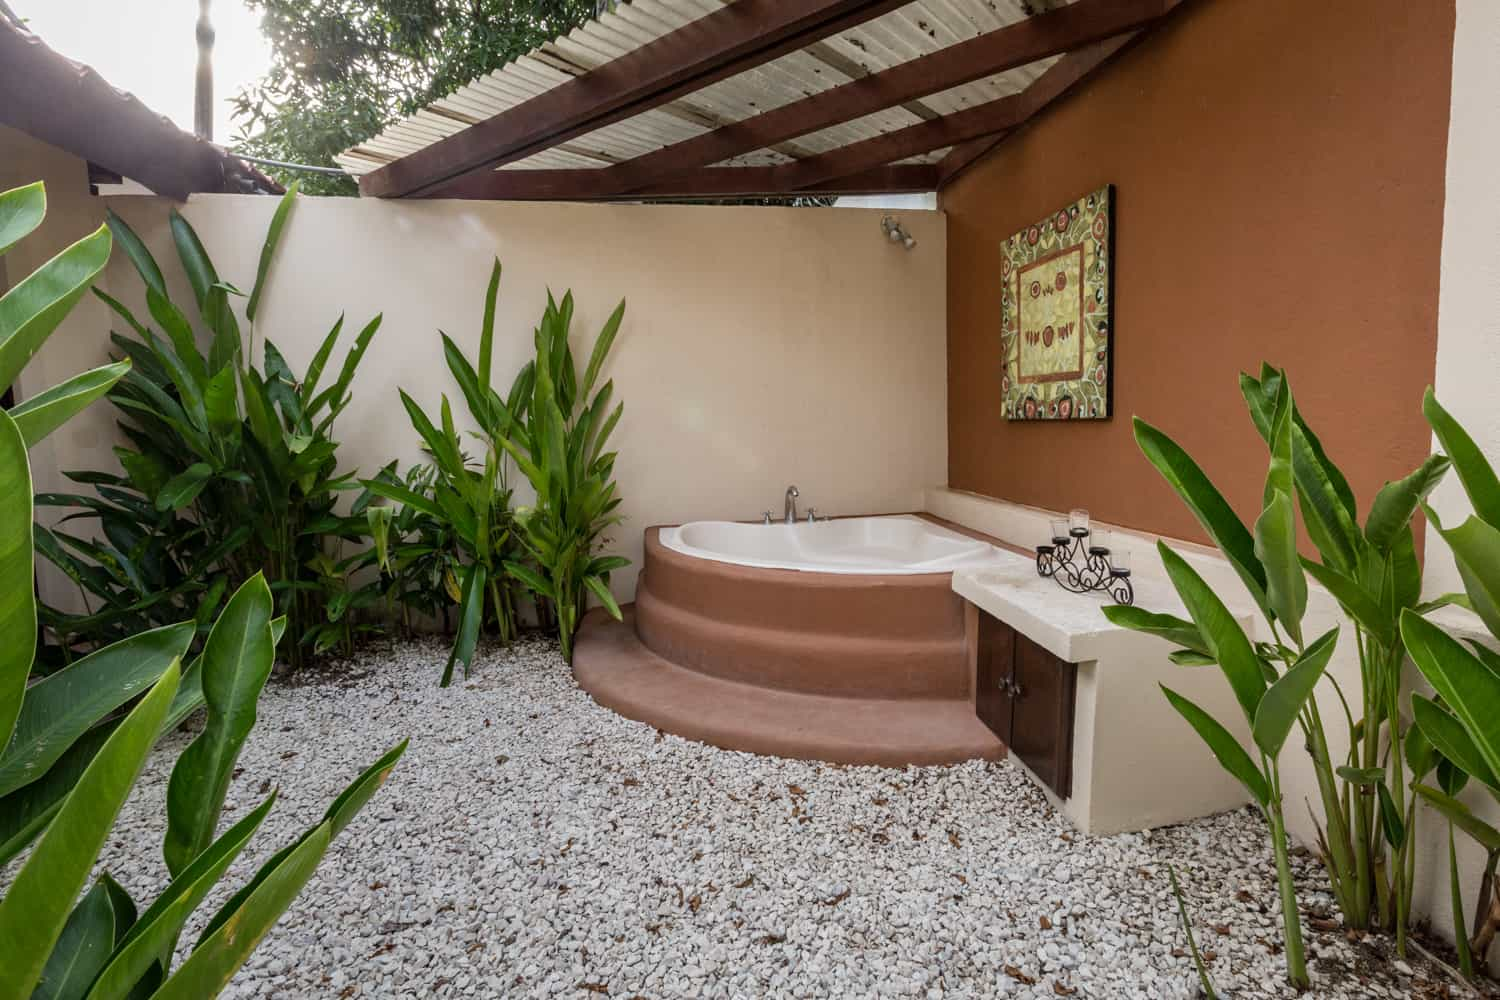 Outdoor hot tub at honeymoon suite on the beach in Guanacaste.